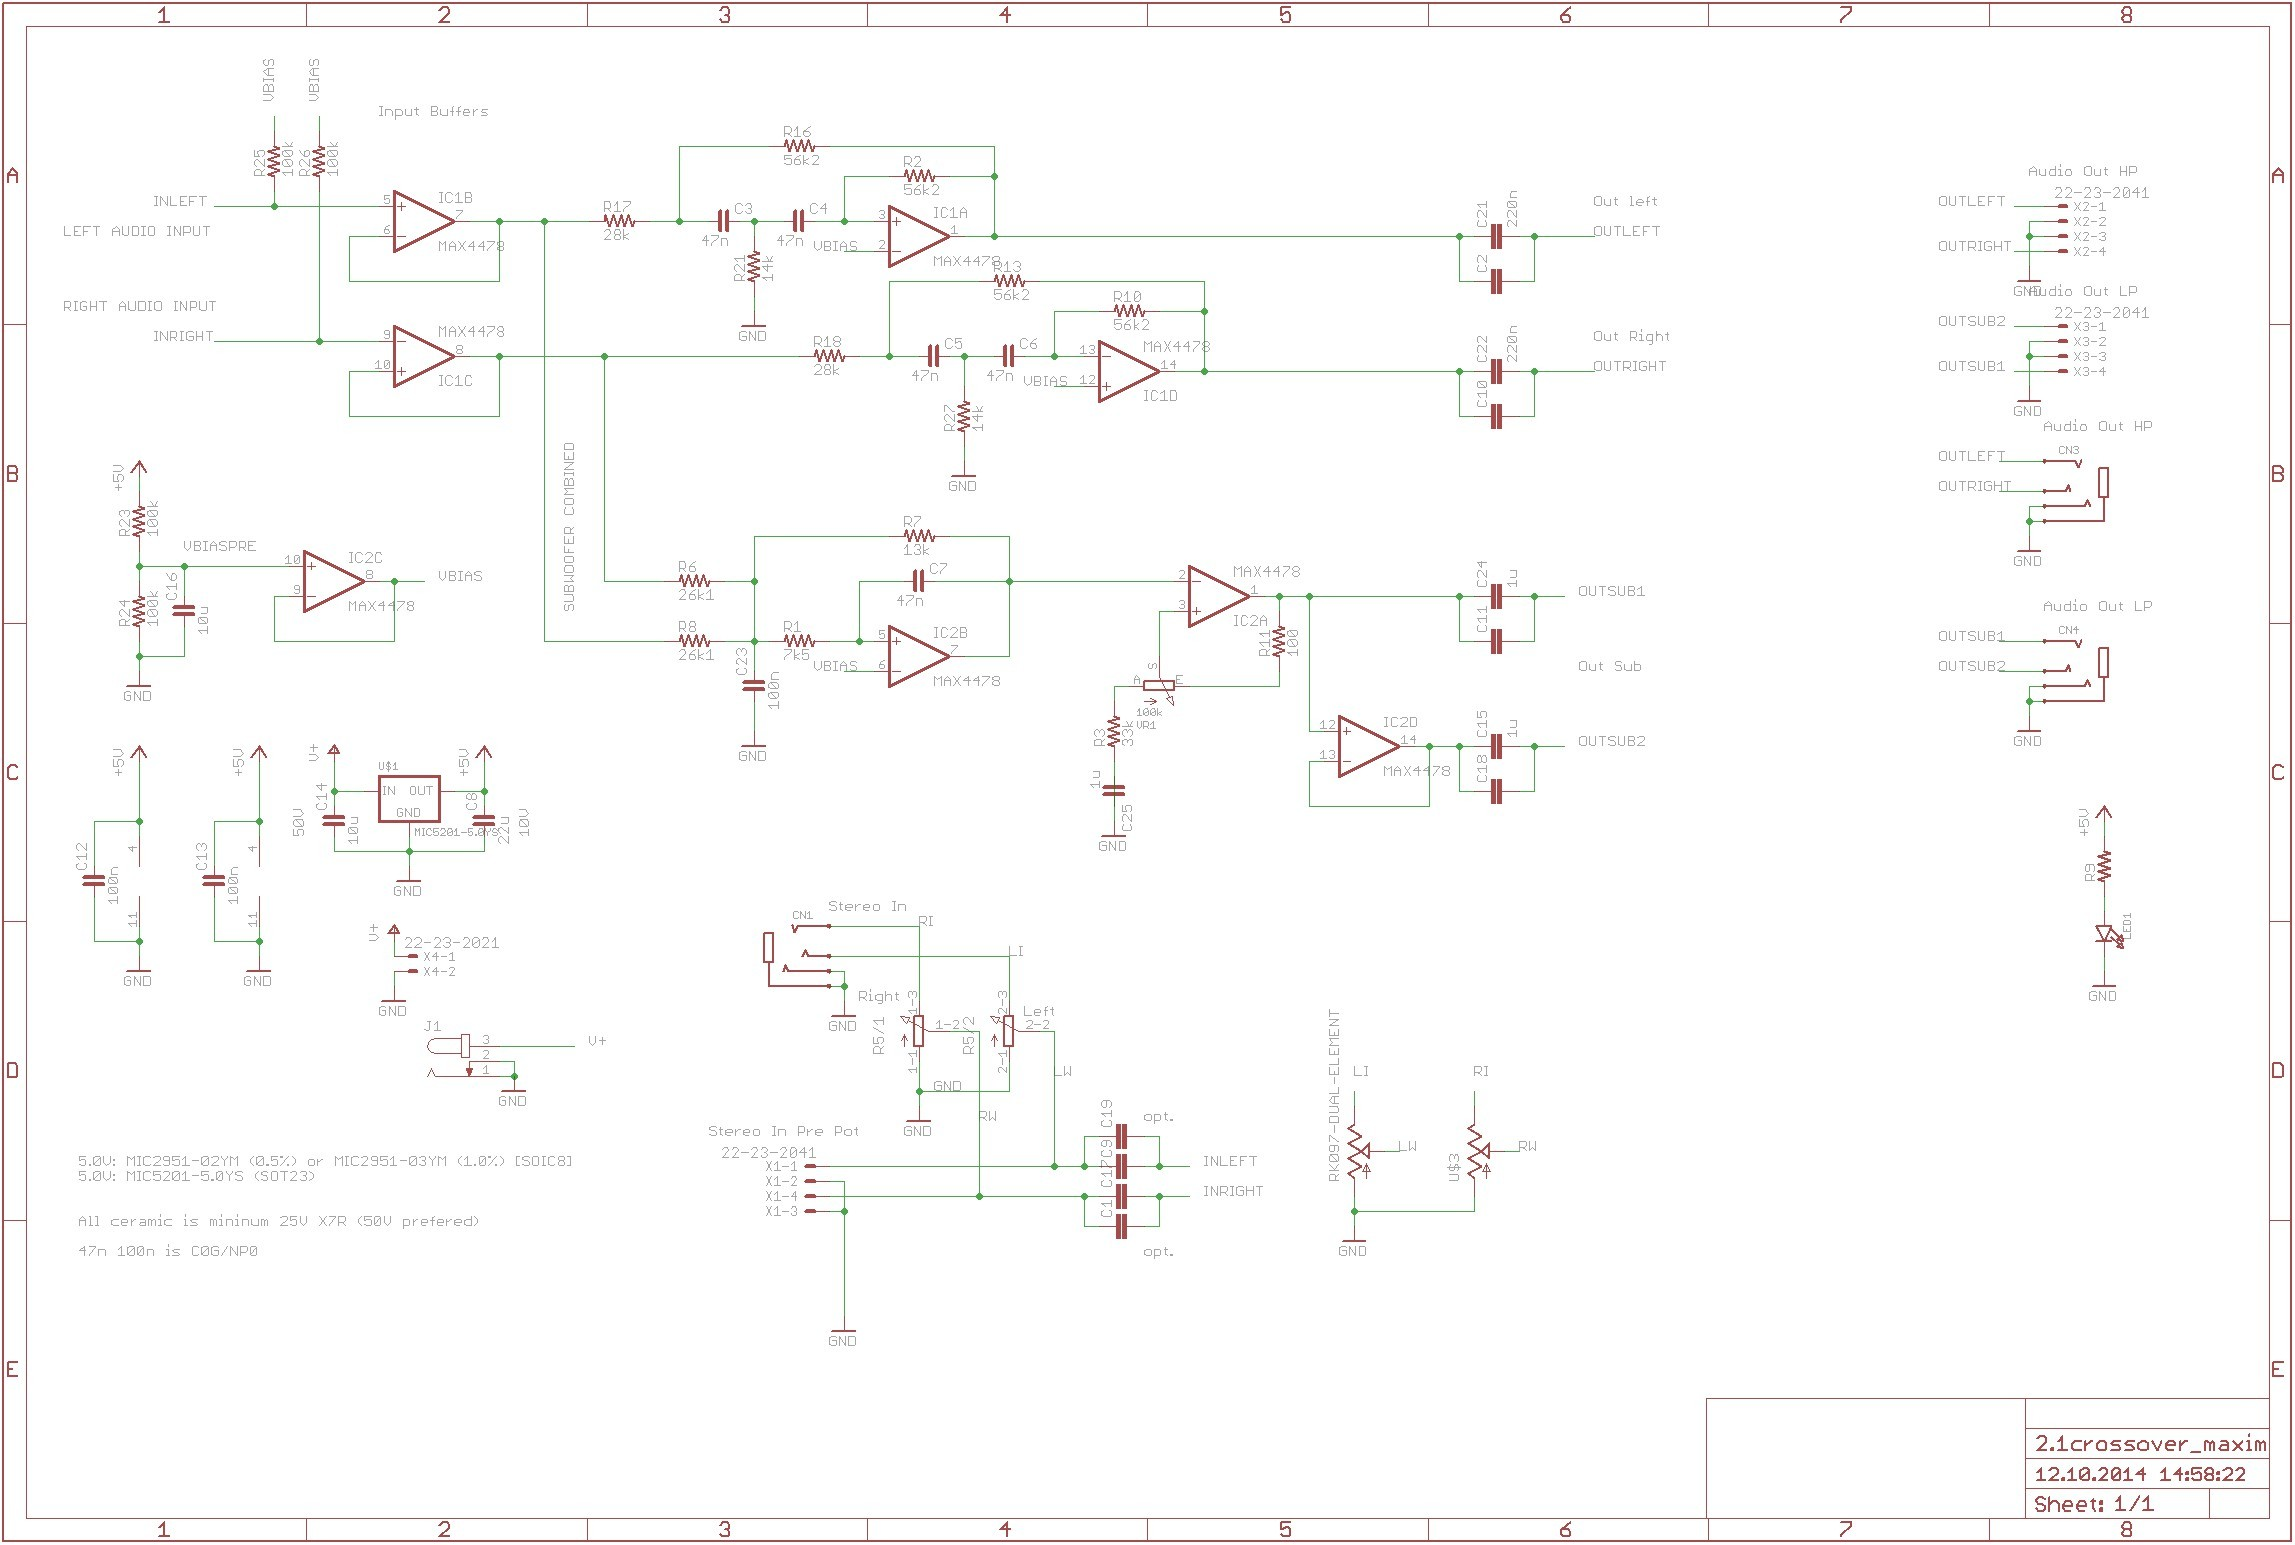 Basic Home Wiring Diagrams Luxury Home Wiring Diagrams Diagram Of Basic Home Wiring Diagrams